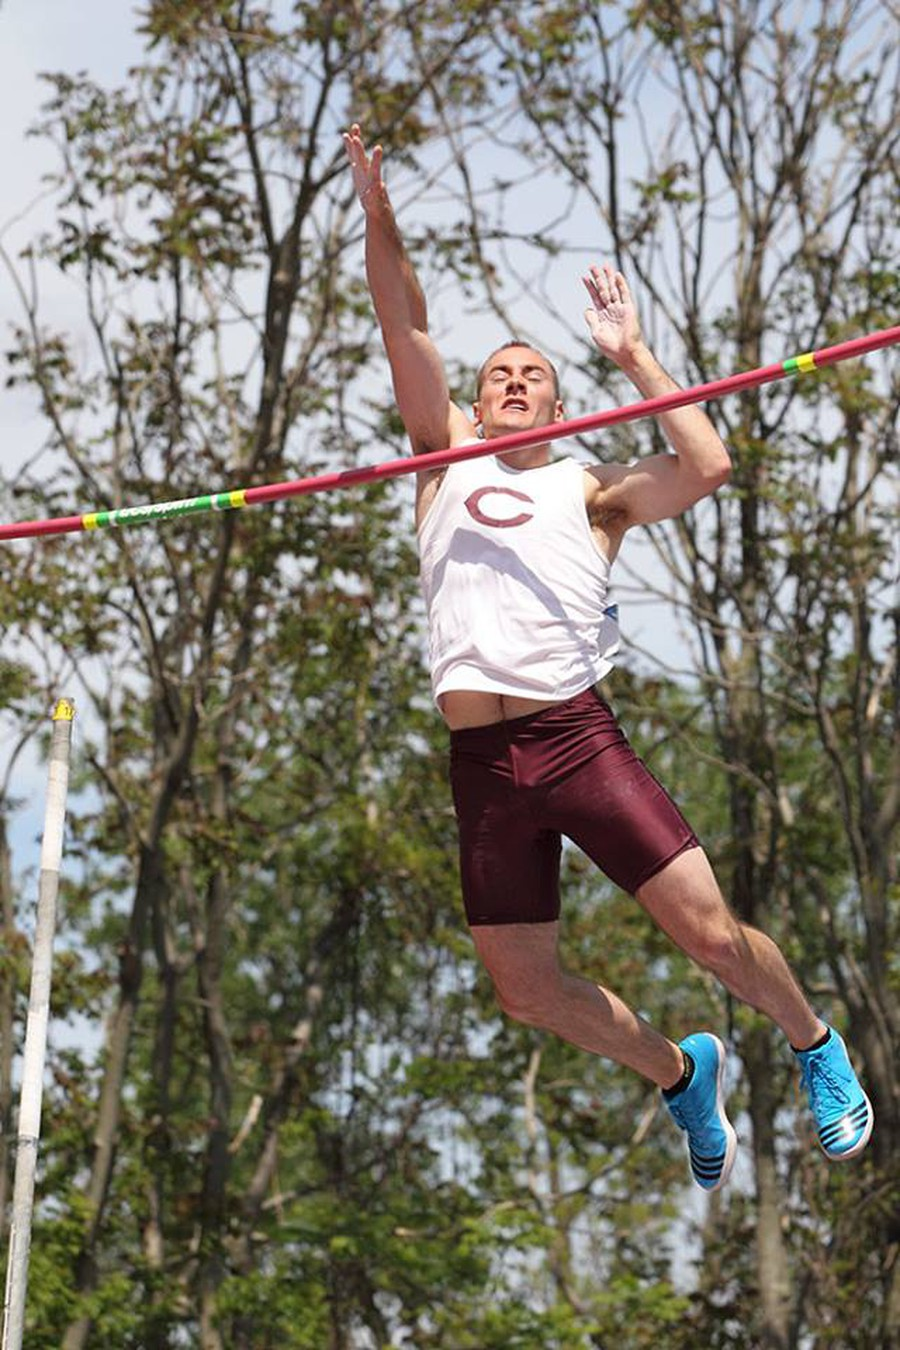 Fourth-year Michael Bennett en route to a successful jump in a recent year's meet.